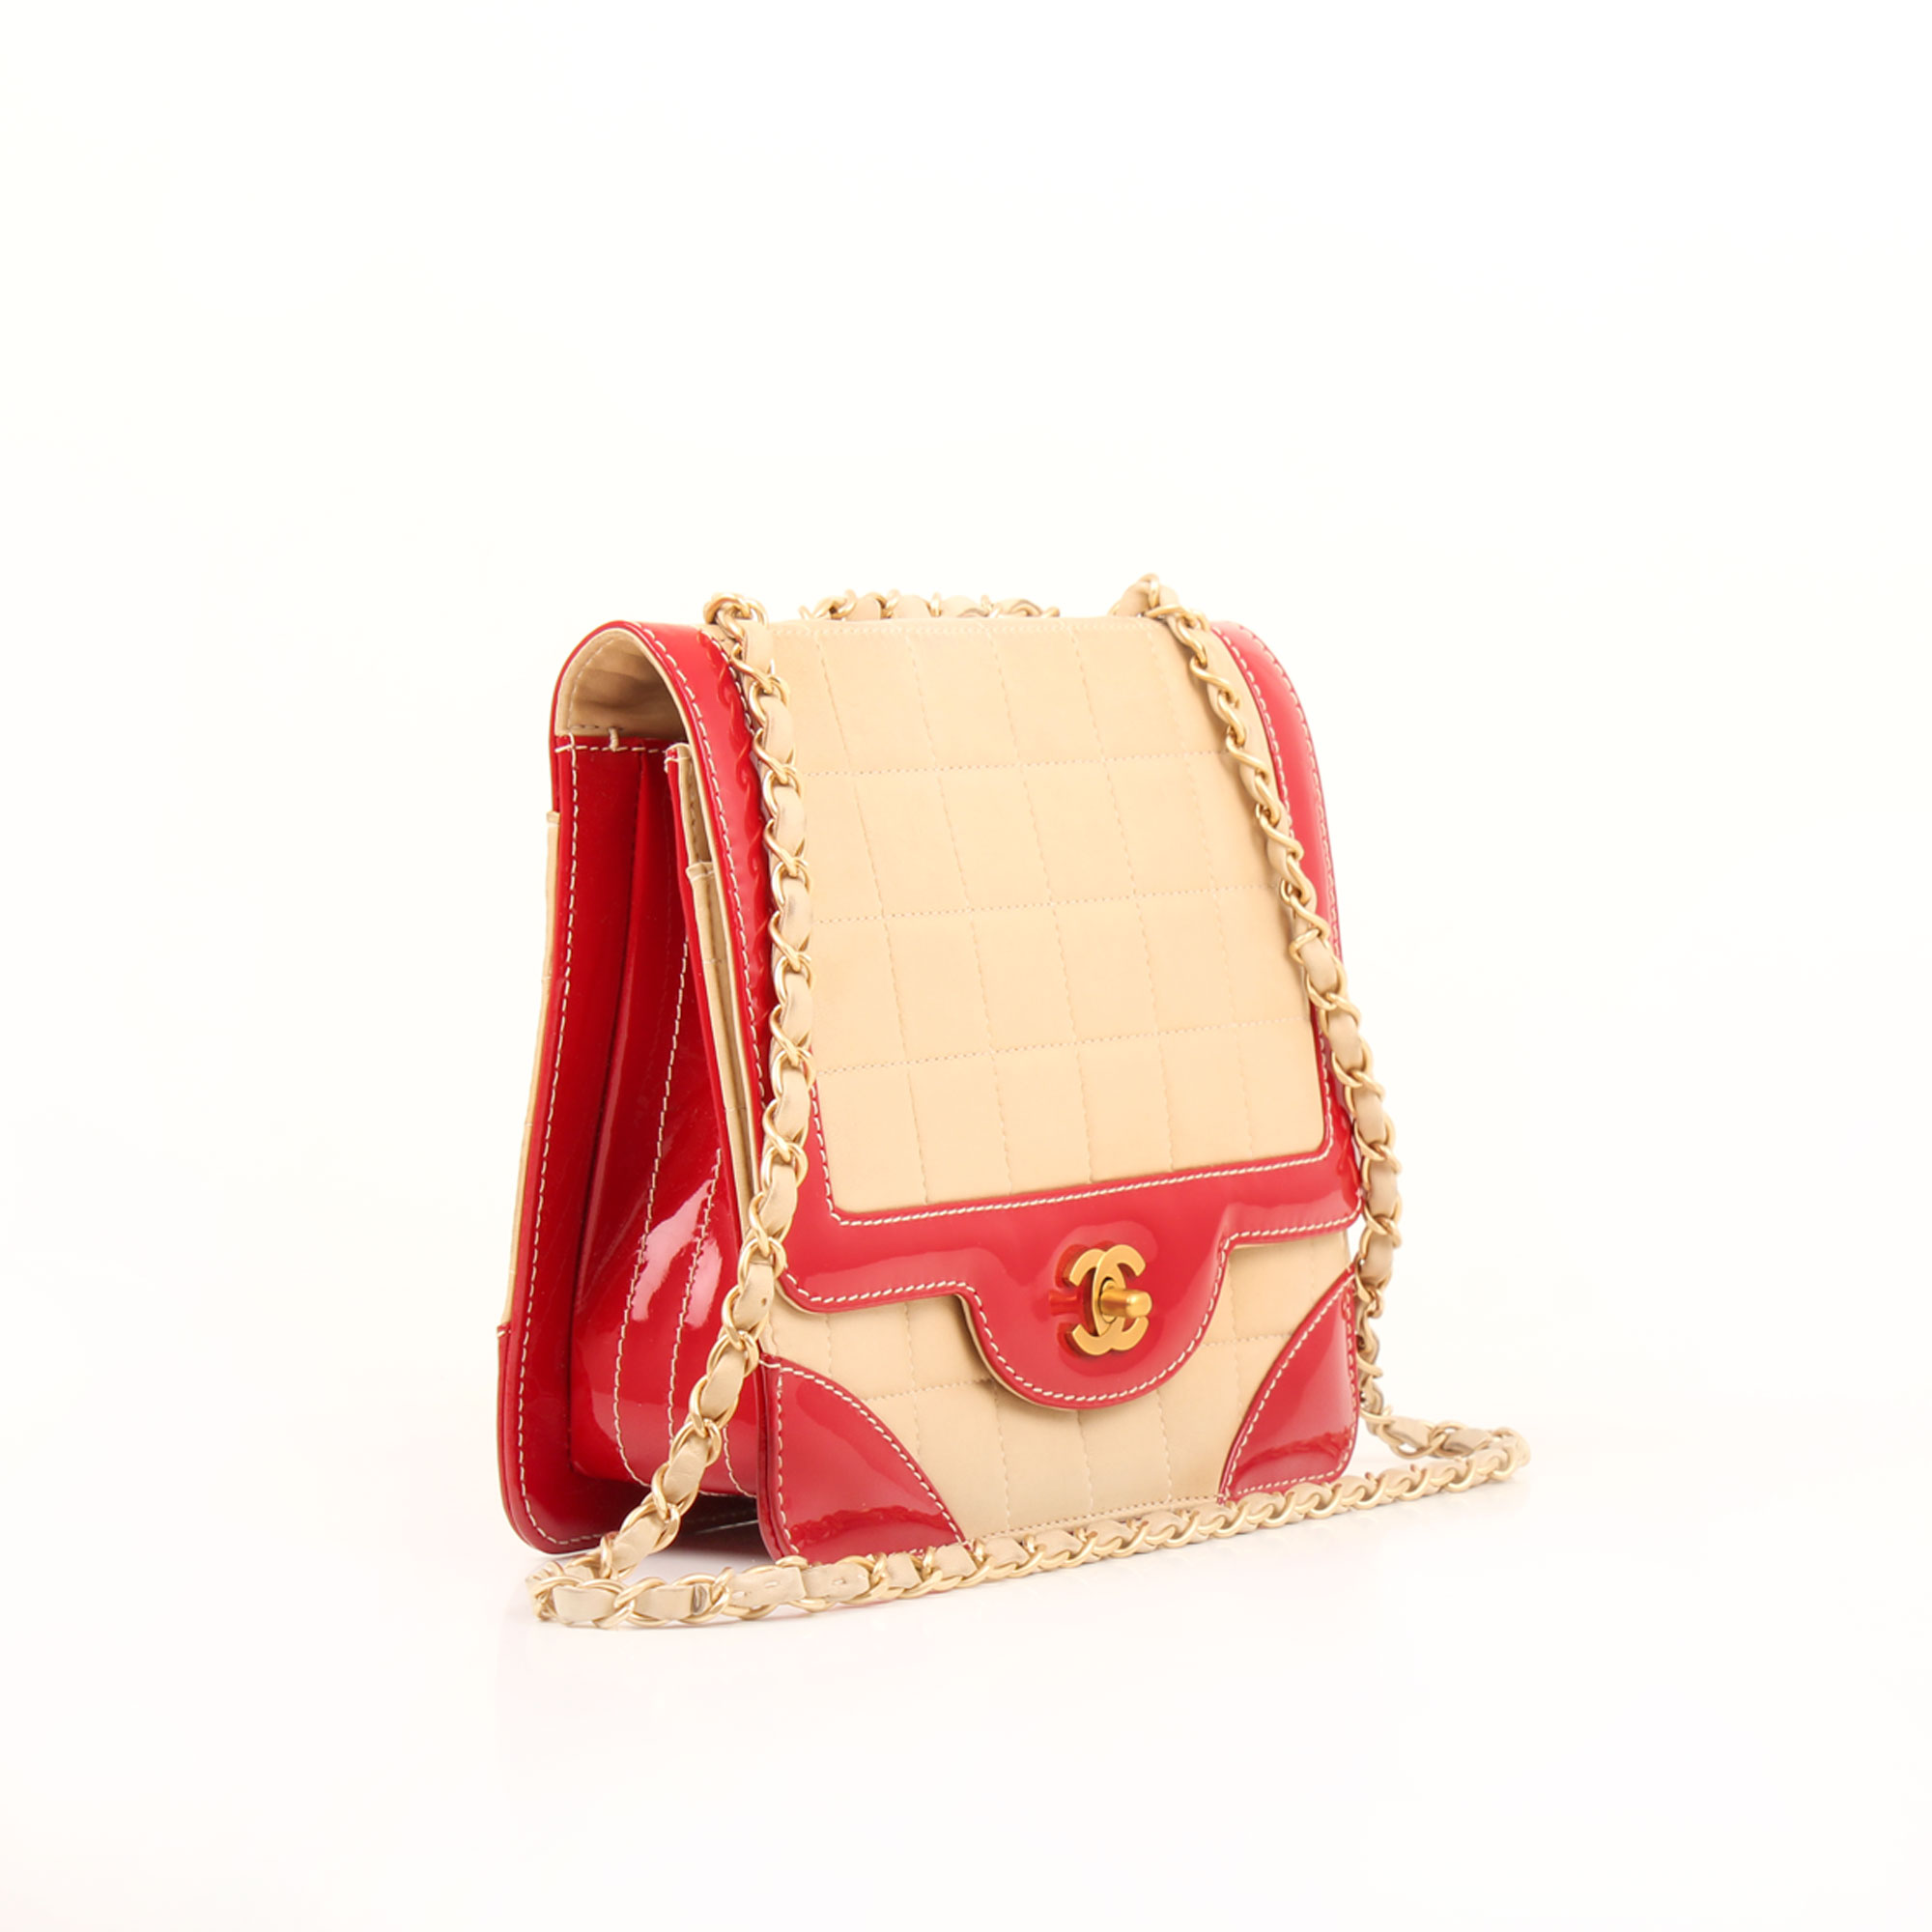 Imagen general del bolso chanel bicolor choco bar solapa unica